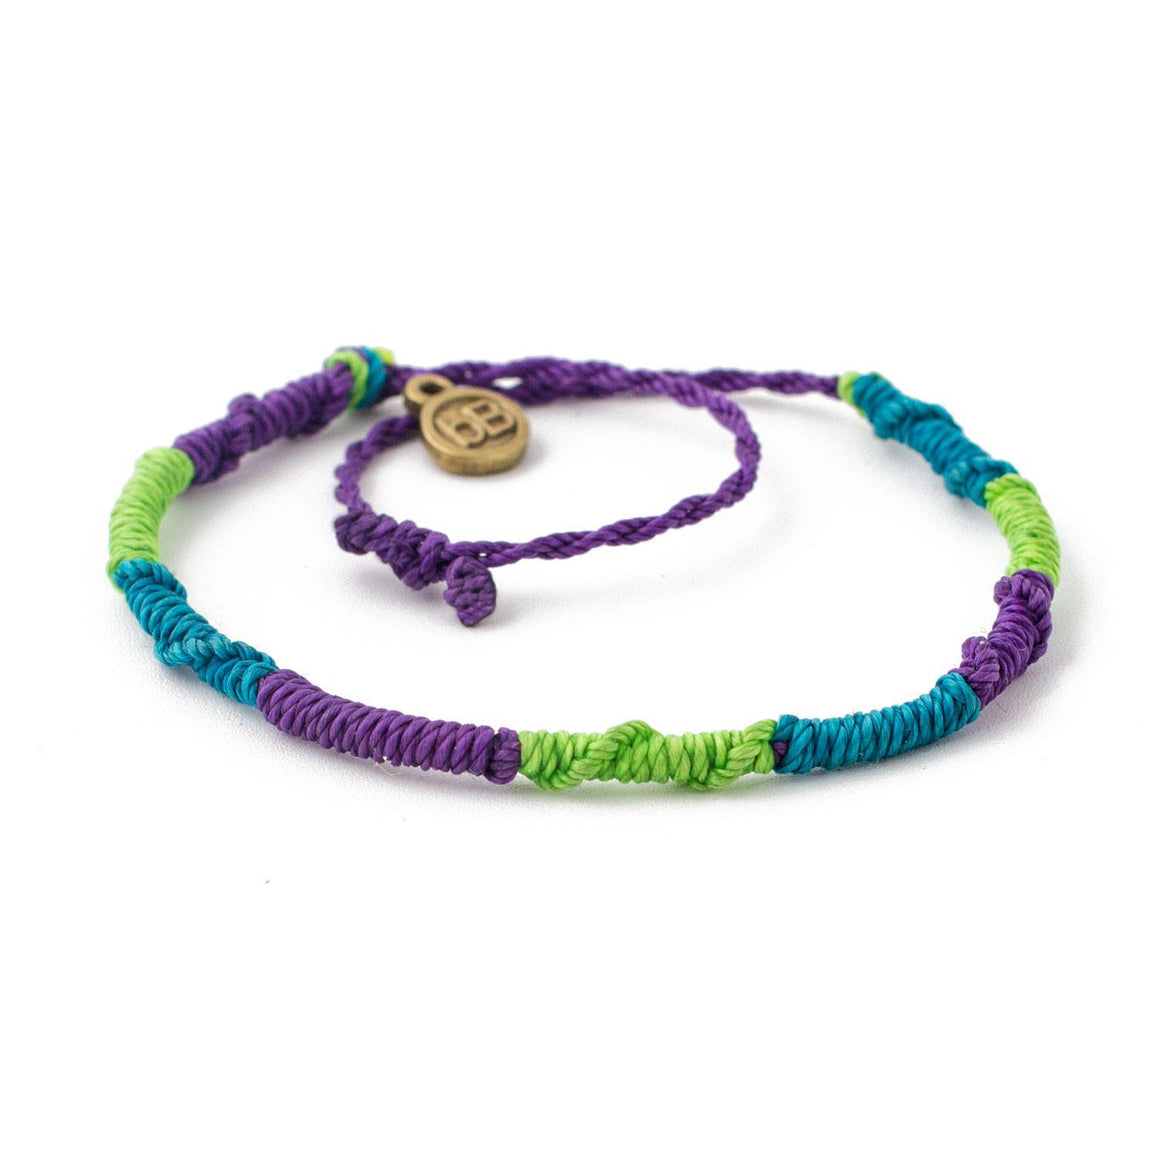 T'hiti Russian Purple beach bracelets cover